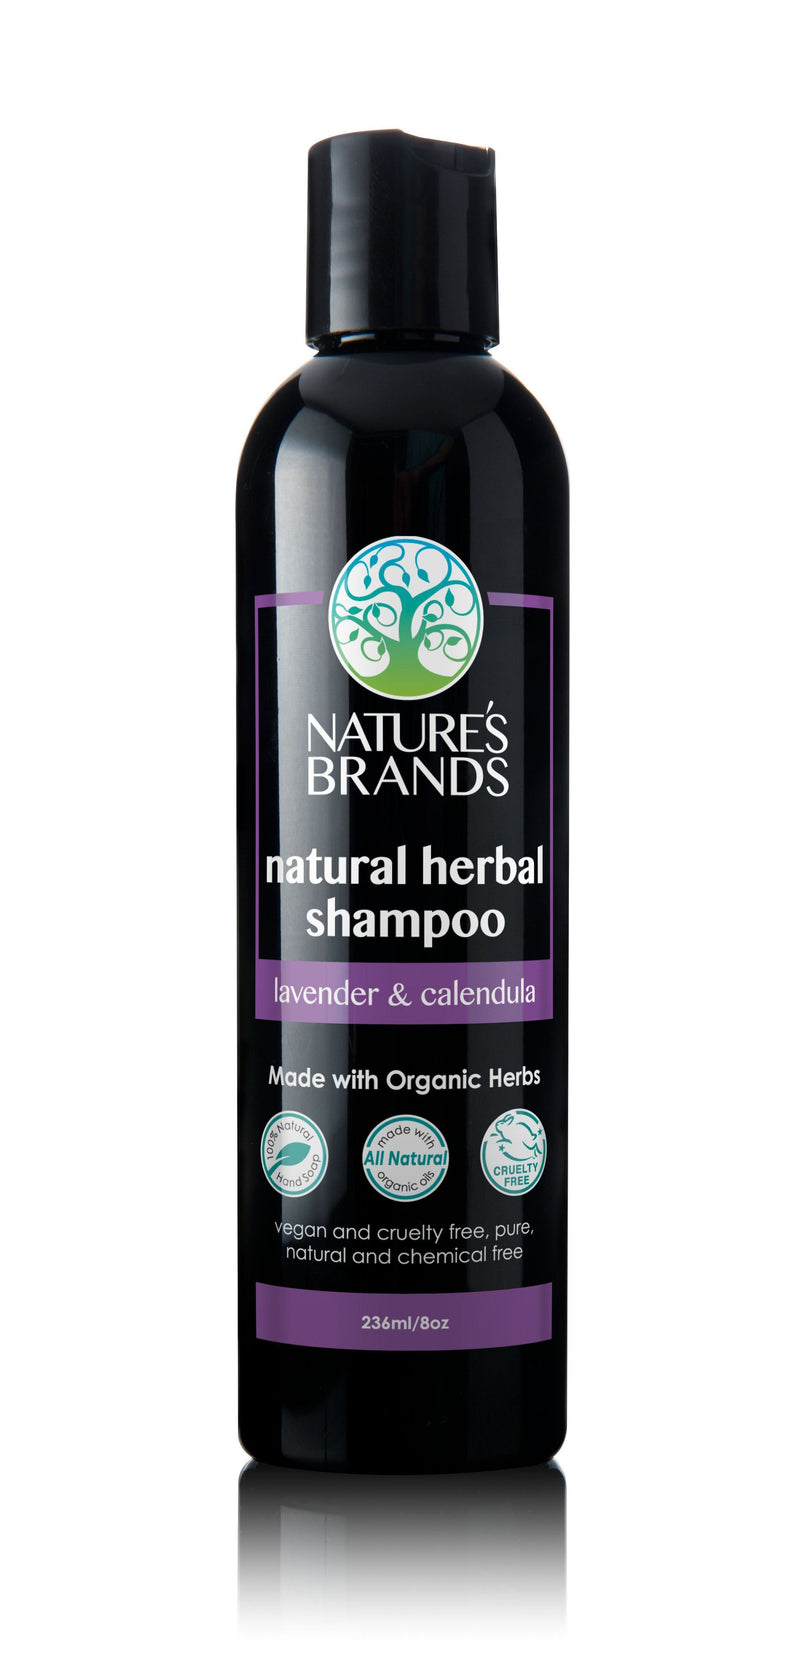 Herbal Choice Mari Natural Shampoo, Lavender & Calendula; Made with Organic - Herbal Choice Mari Natural Shampoo, Lavender & Calendula; Made with Organic - 8floz